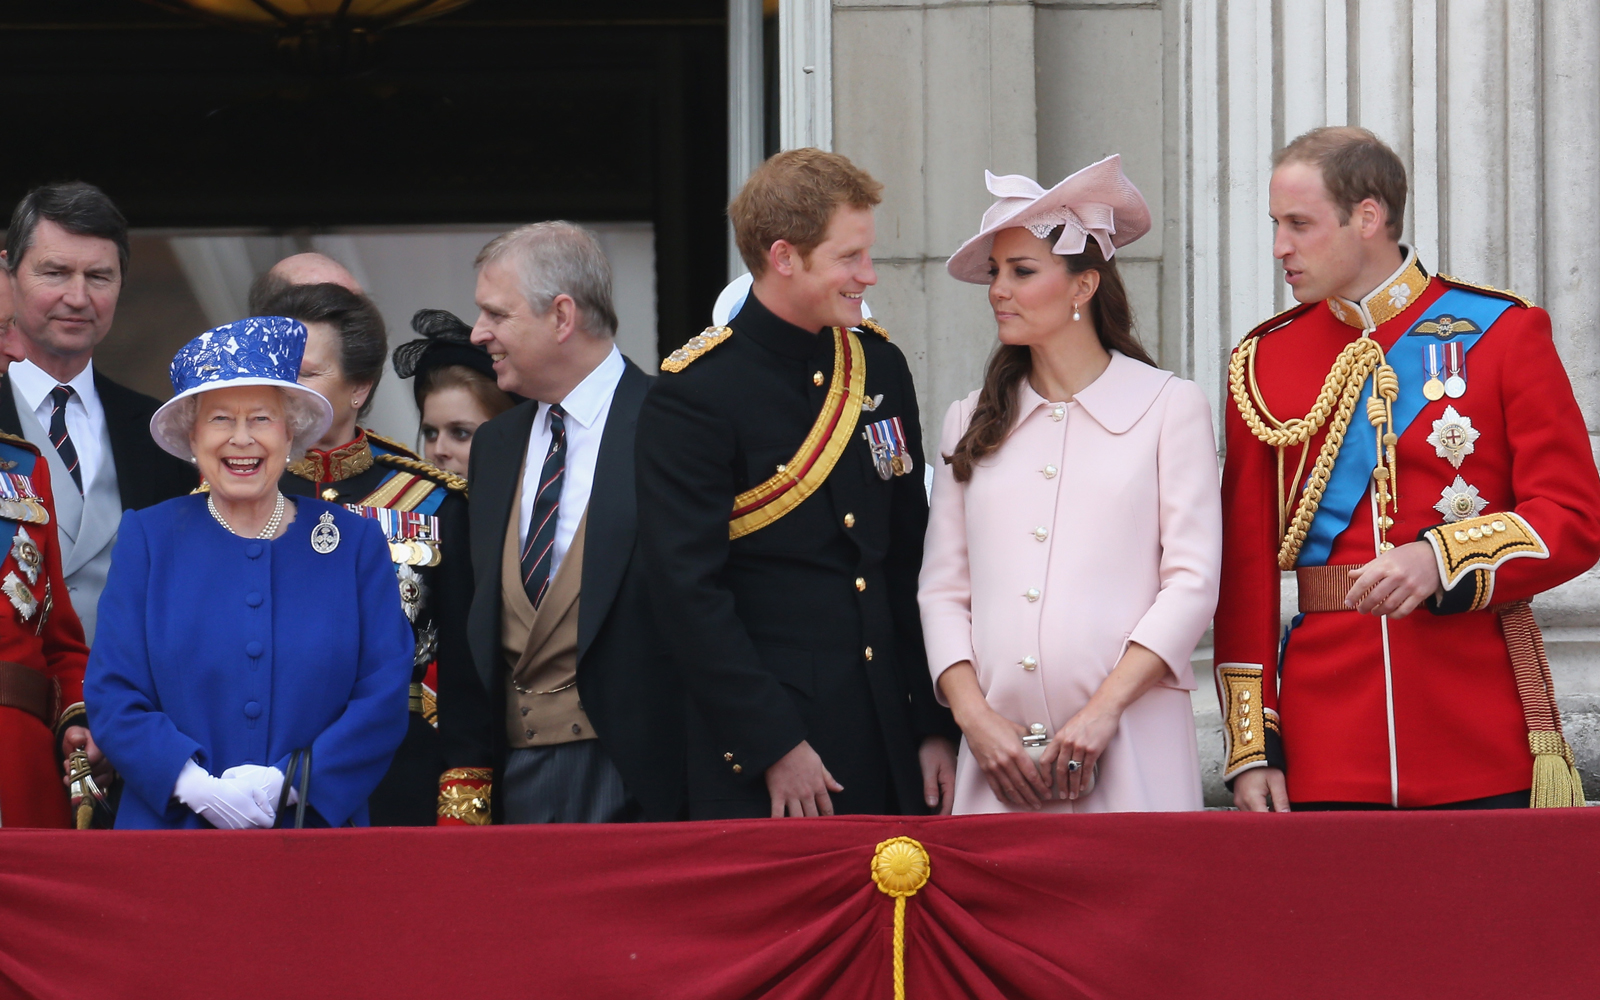 Prince William and Kate Middleton's Third Baby Will Have a Very Long Royal Title